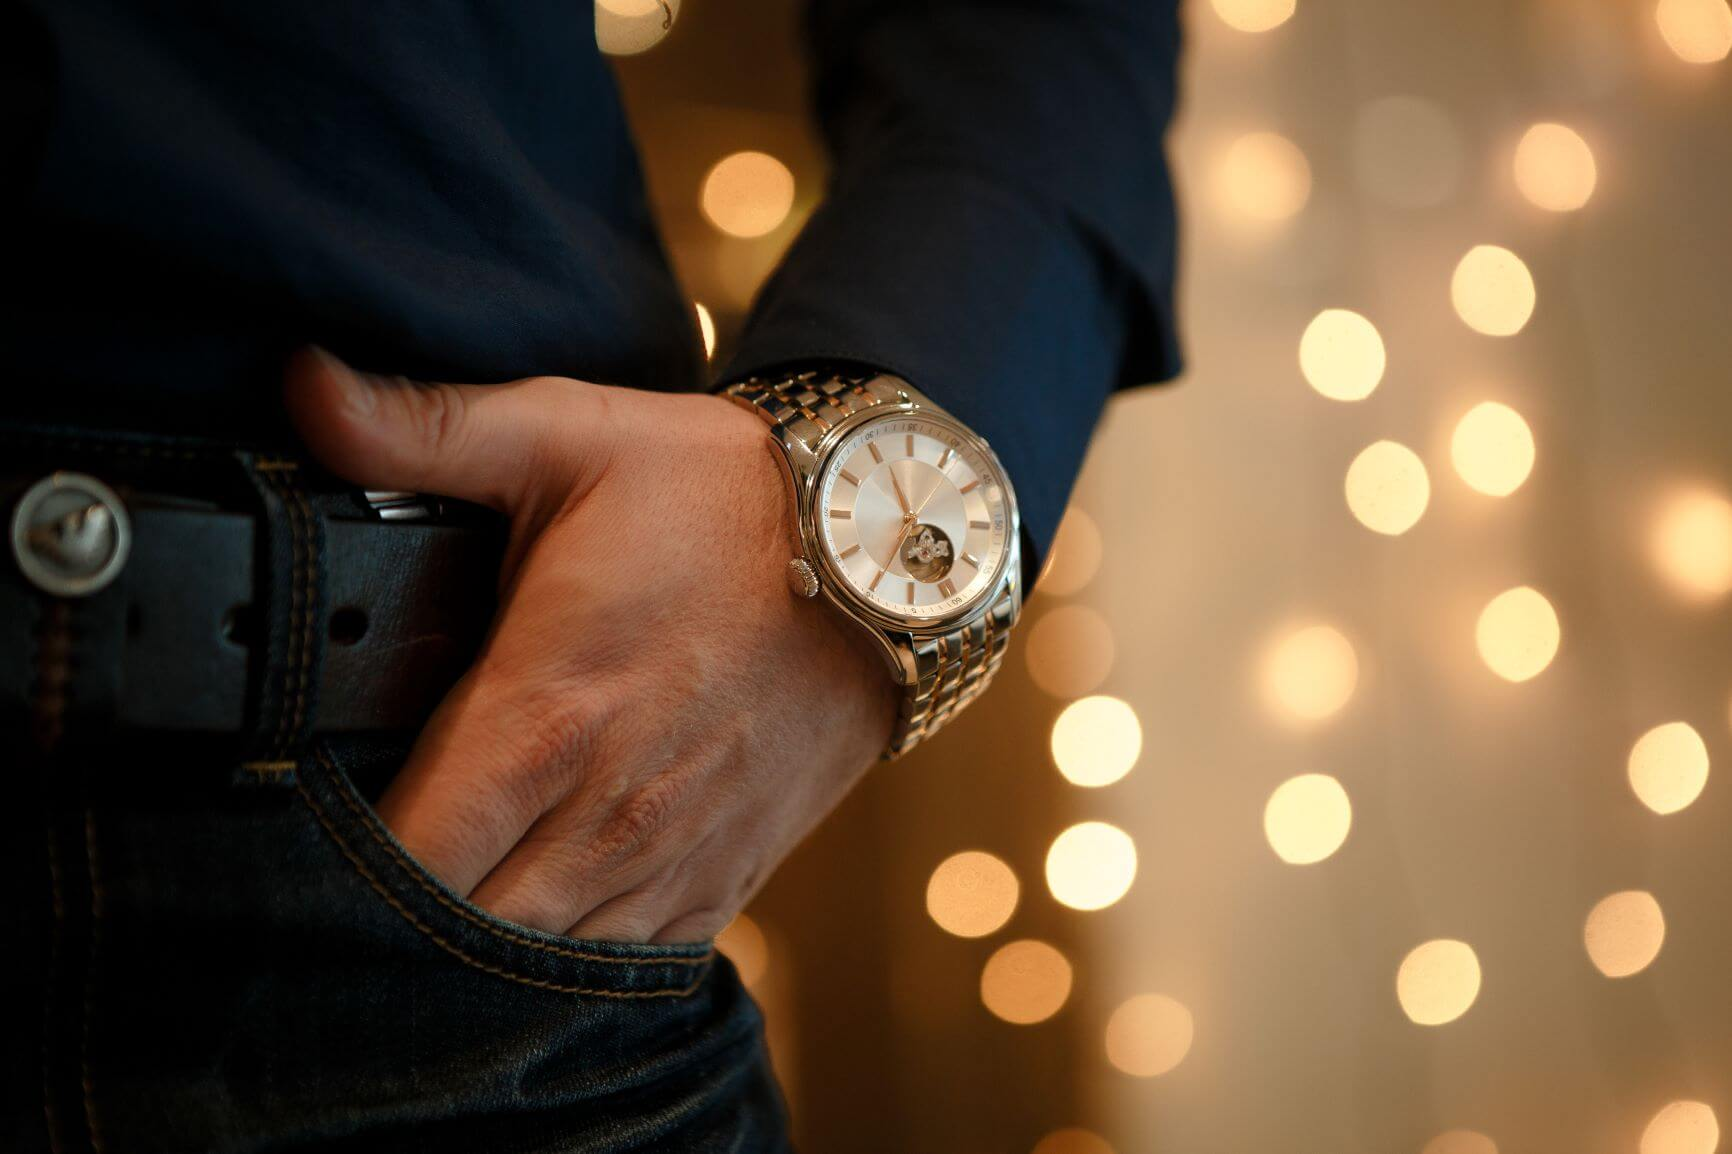 How to Choose the Perfect Designer or Luxury Watch